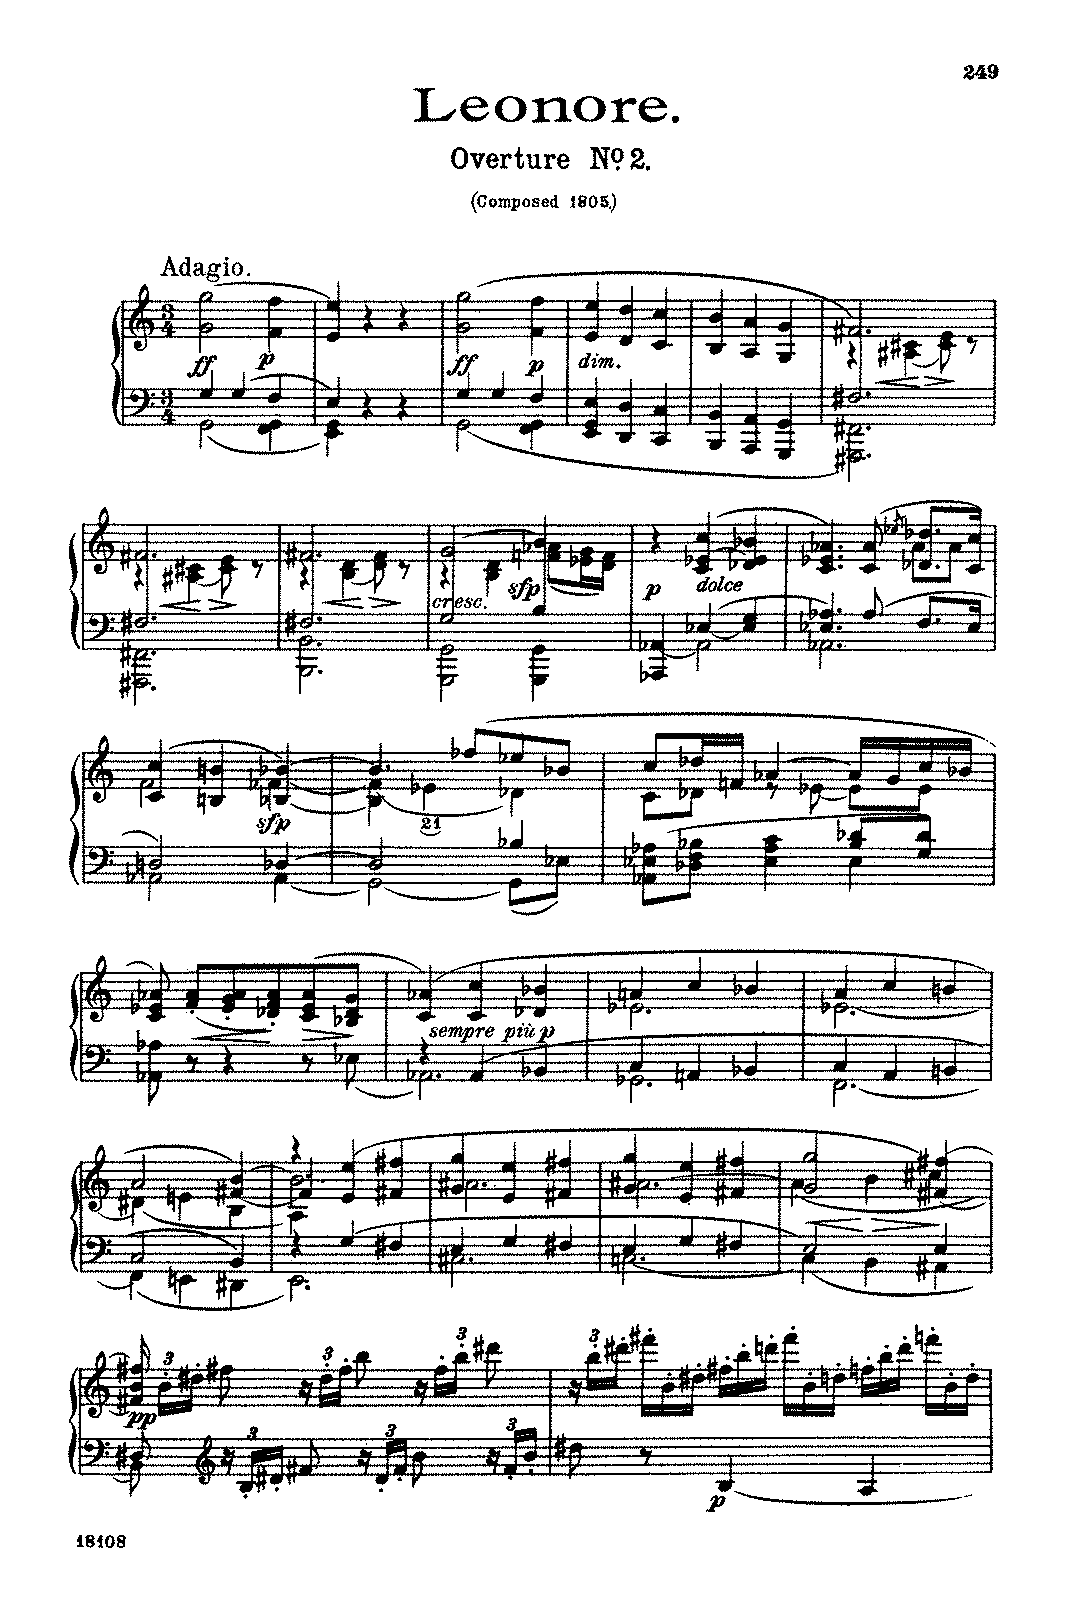 PMLP04953-beethovenfidelioschirmerleonoreovertureno.2vocalscore.pdf